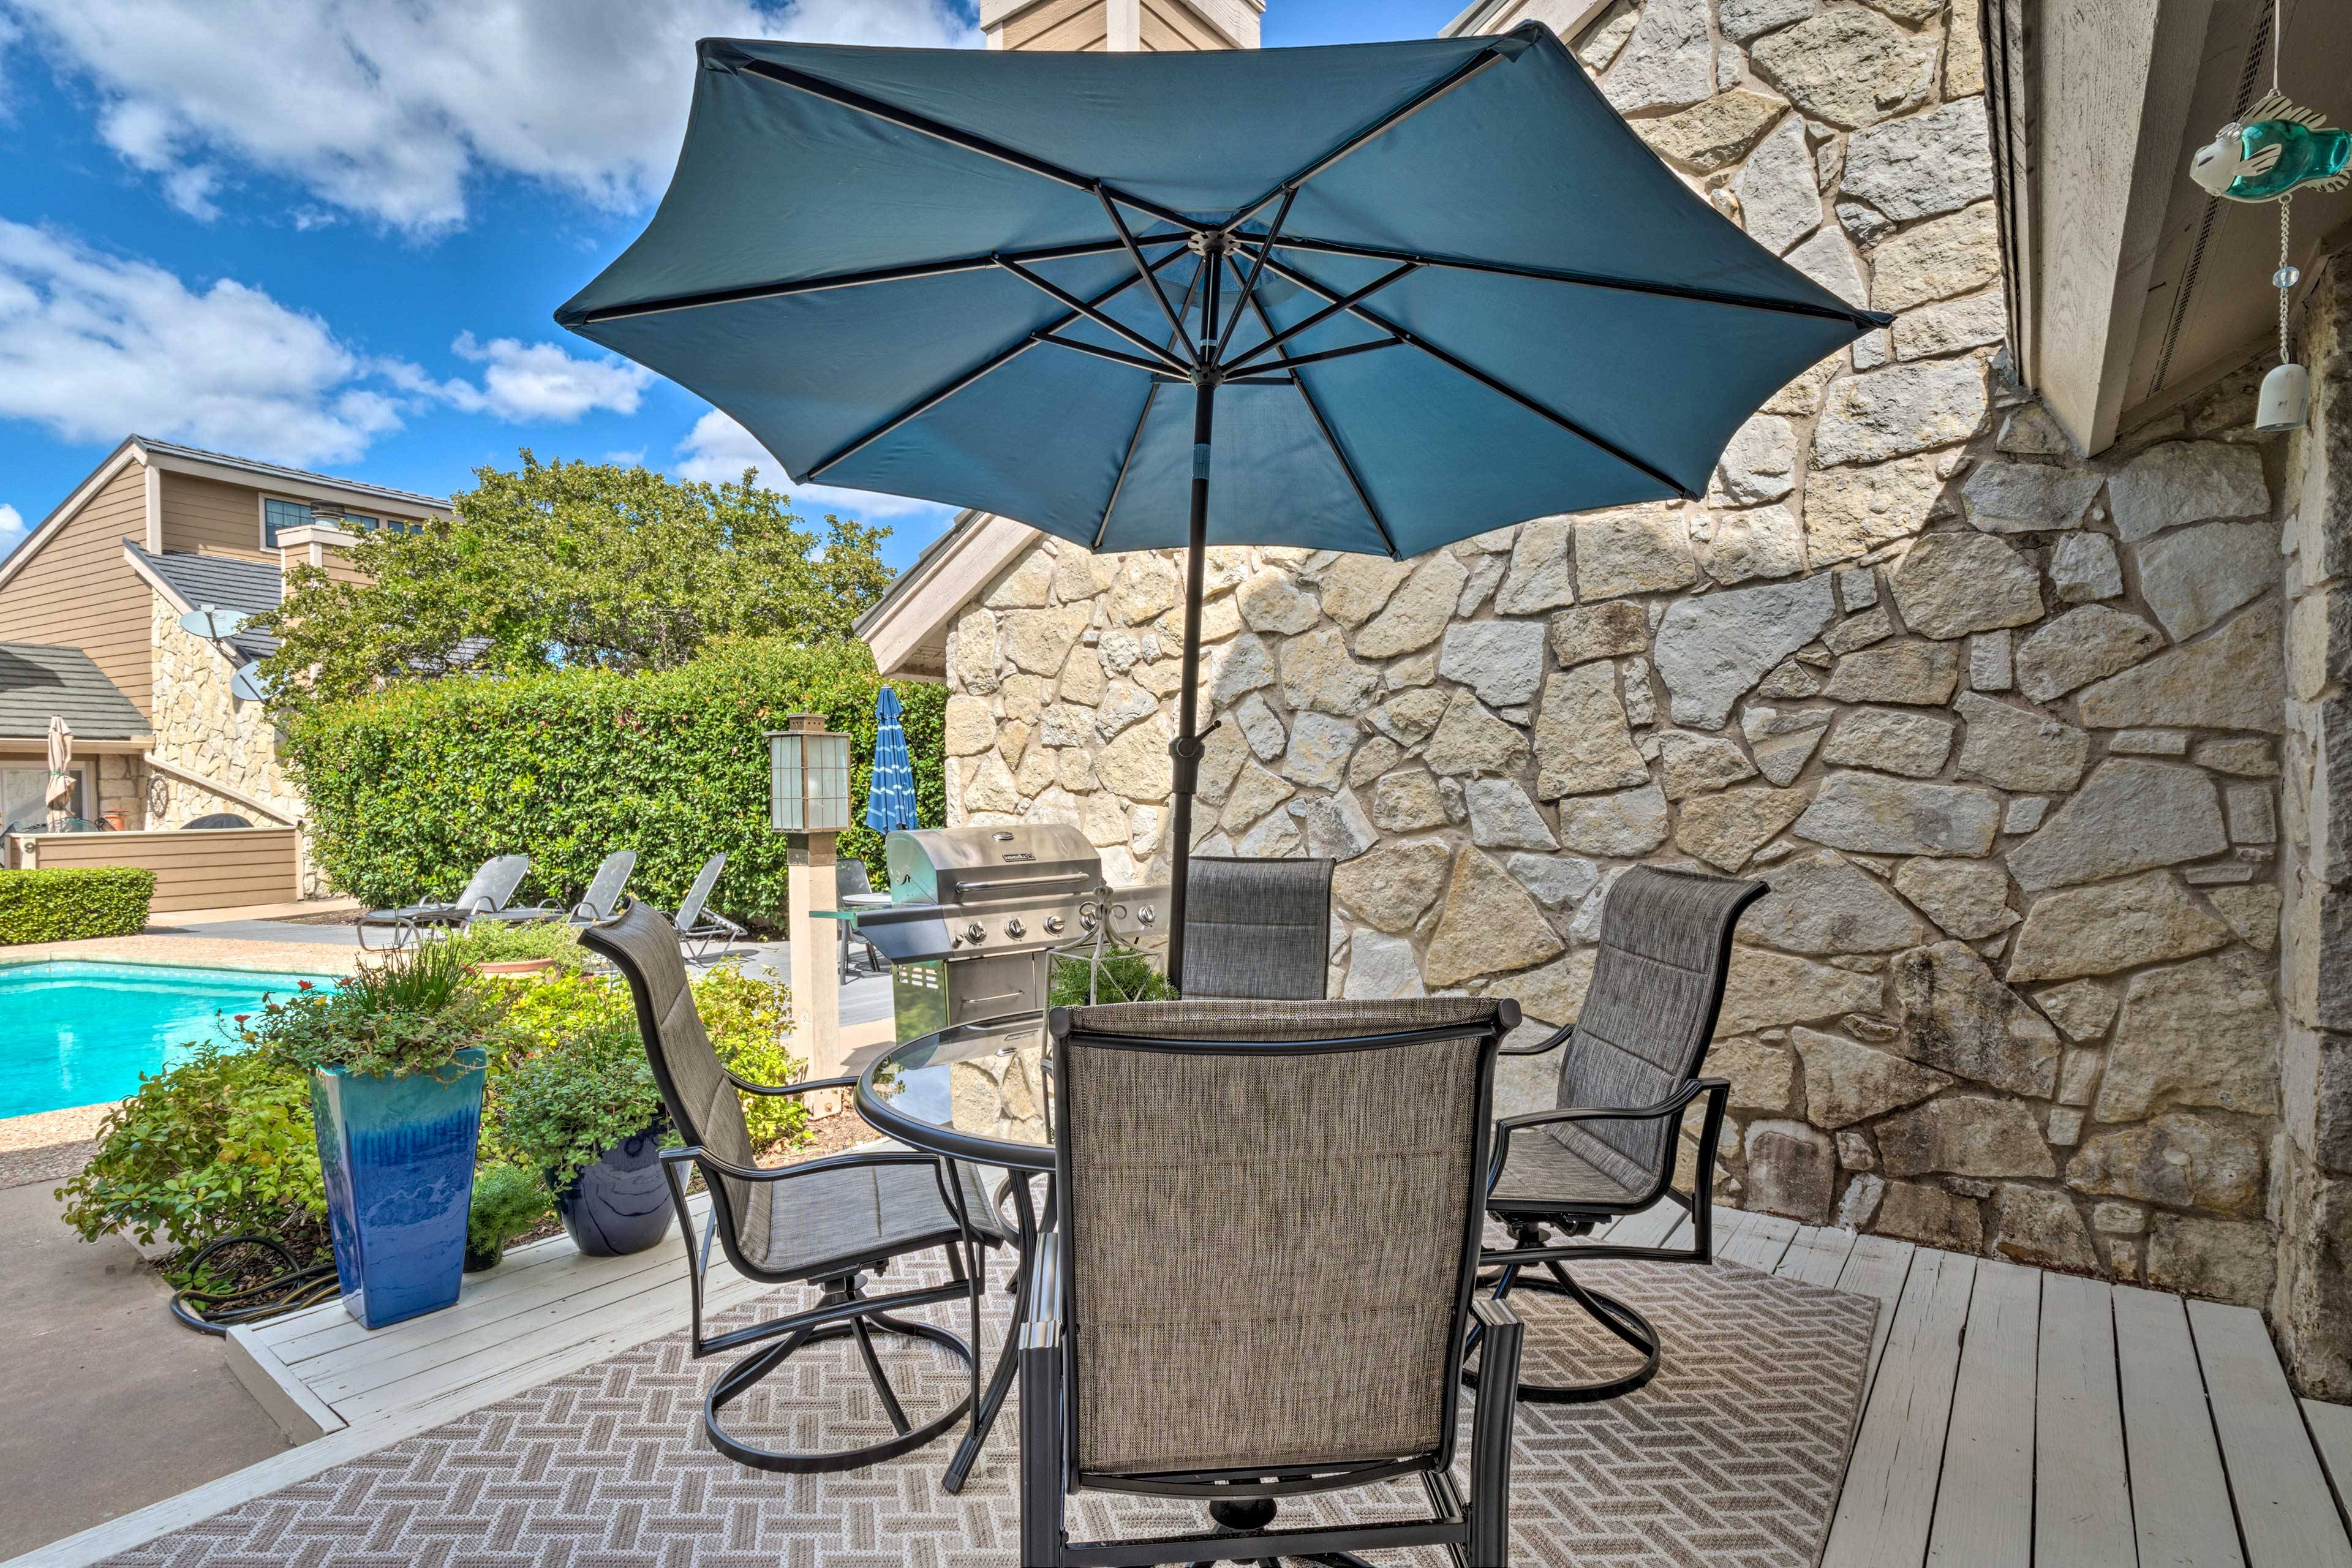 Enjoy a beverage out on the patio overlooking the community pool.